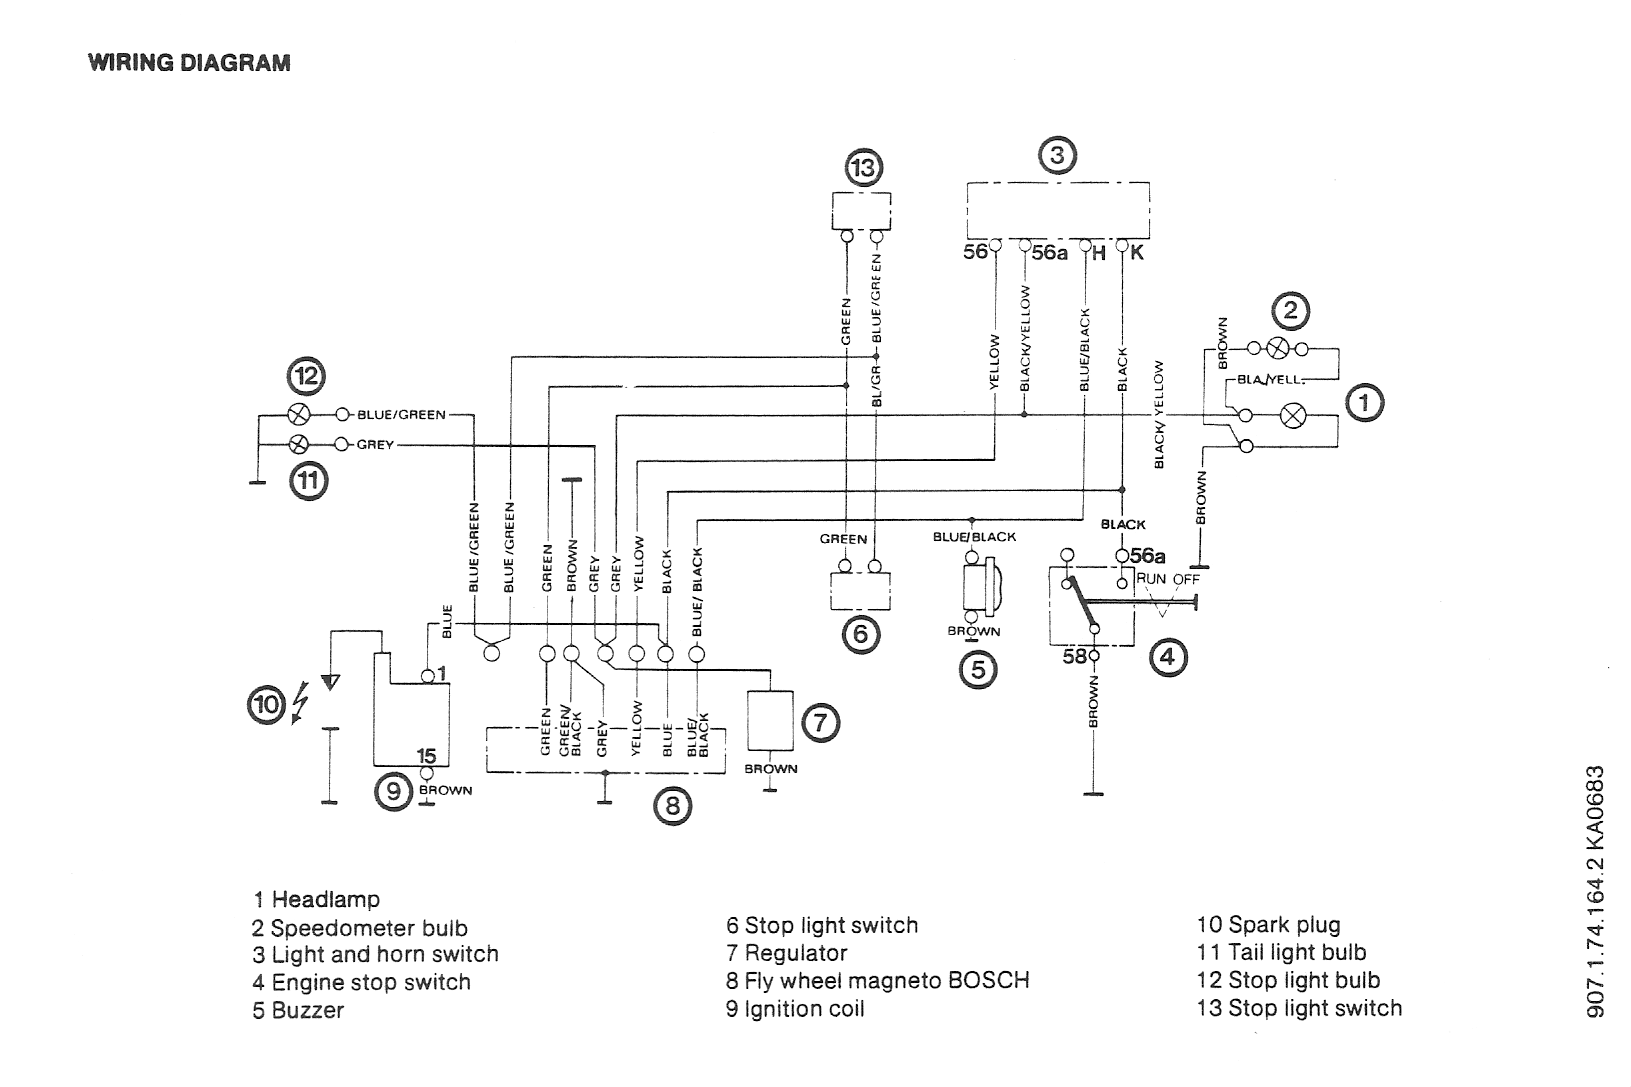 [DHAV_9290]  Puch wiring diagrams - Moped Wiki | Wiring Diagram Puch Newport |  | Moped Army